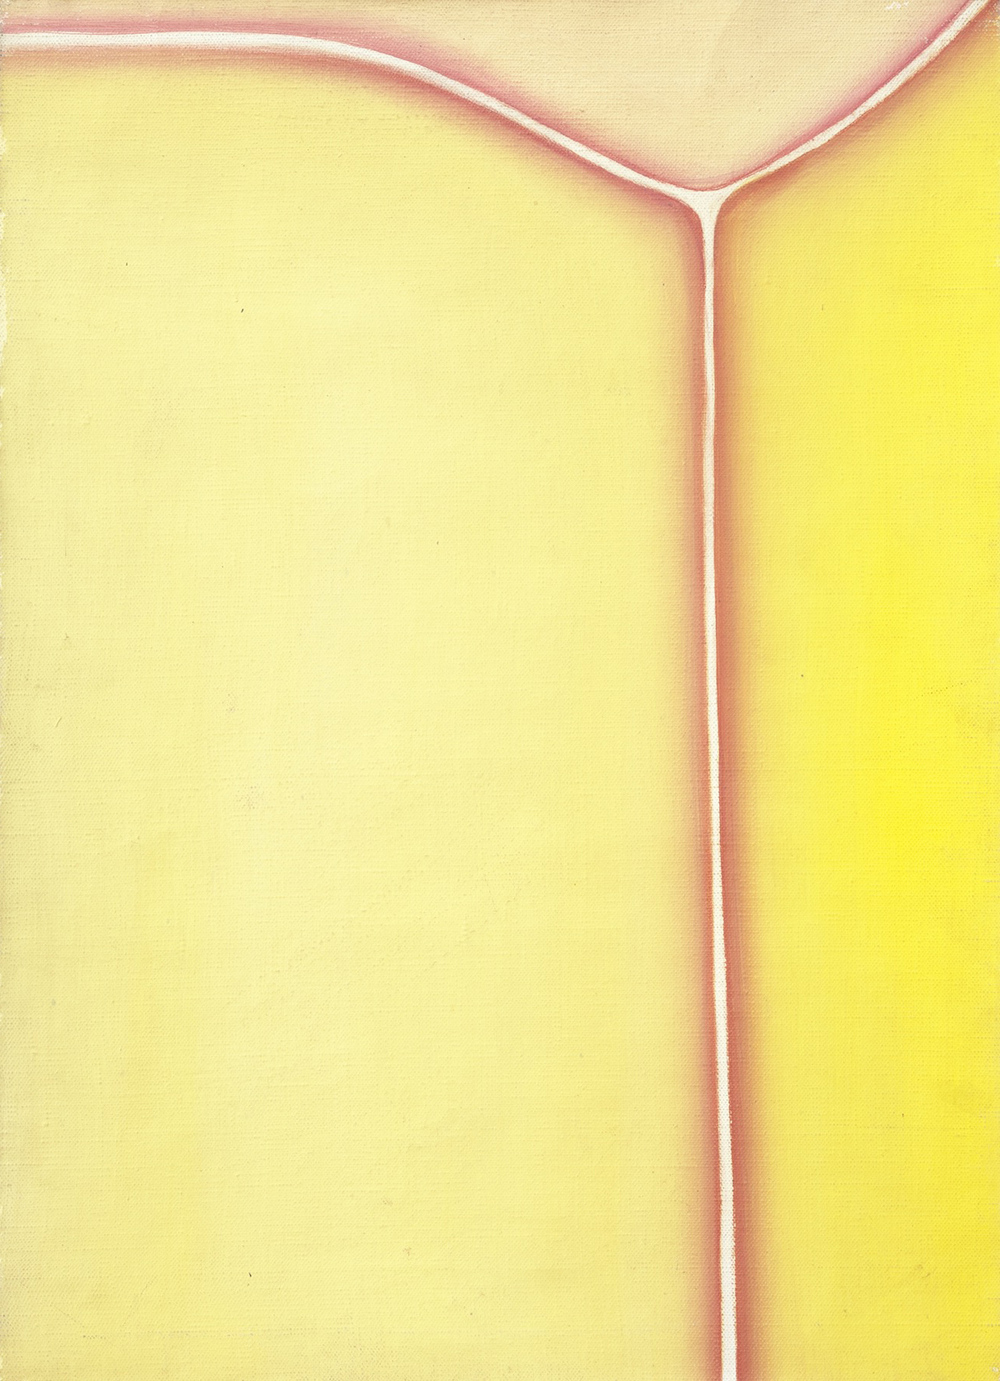 Huguette Caland   Bribes de Corps , 1973 oil on linen 19 x 13.75 inches 48.3 x 34.9 cm